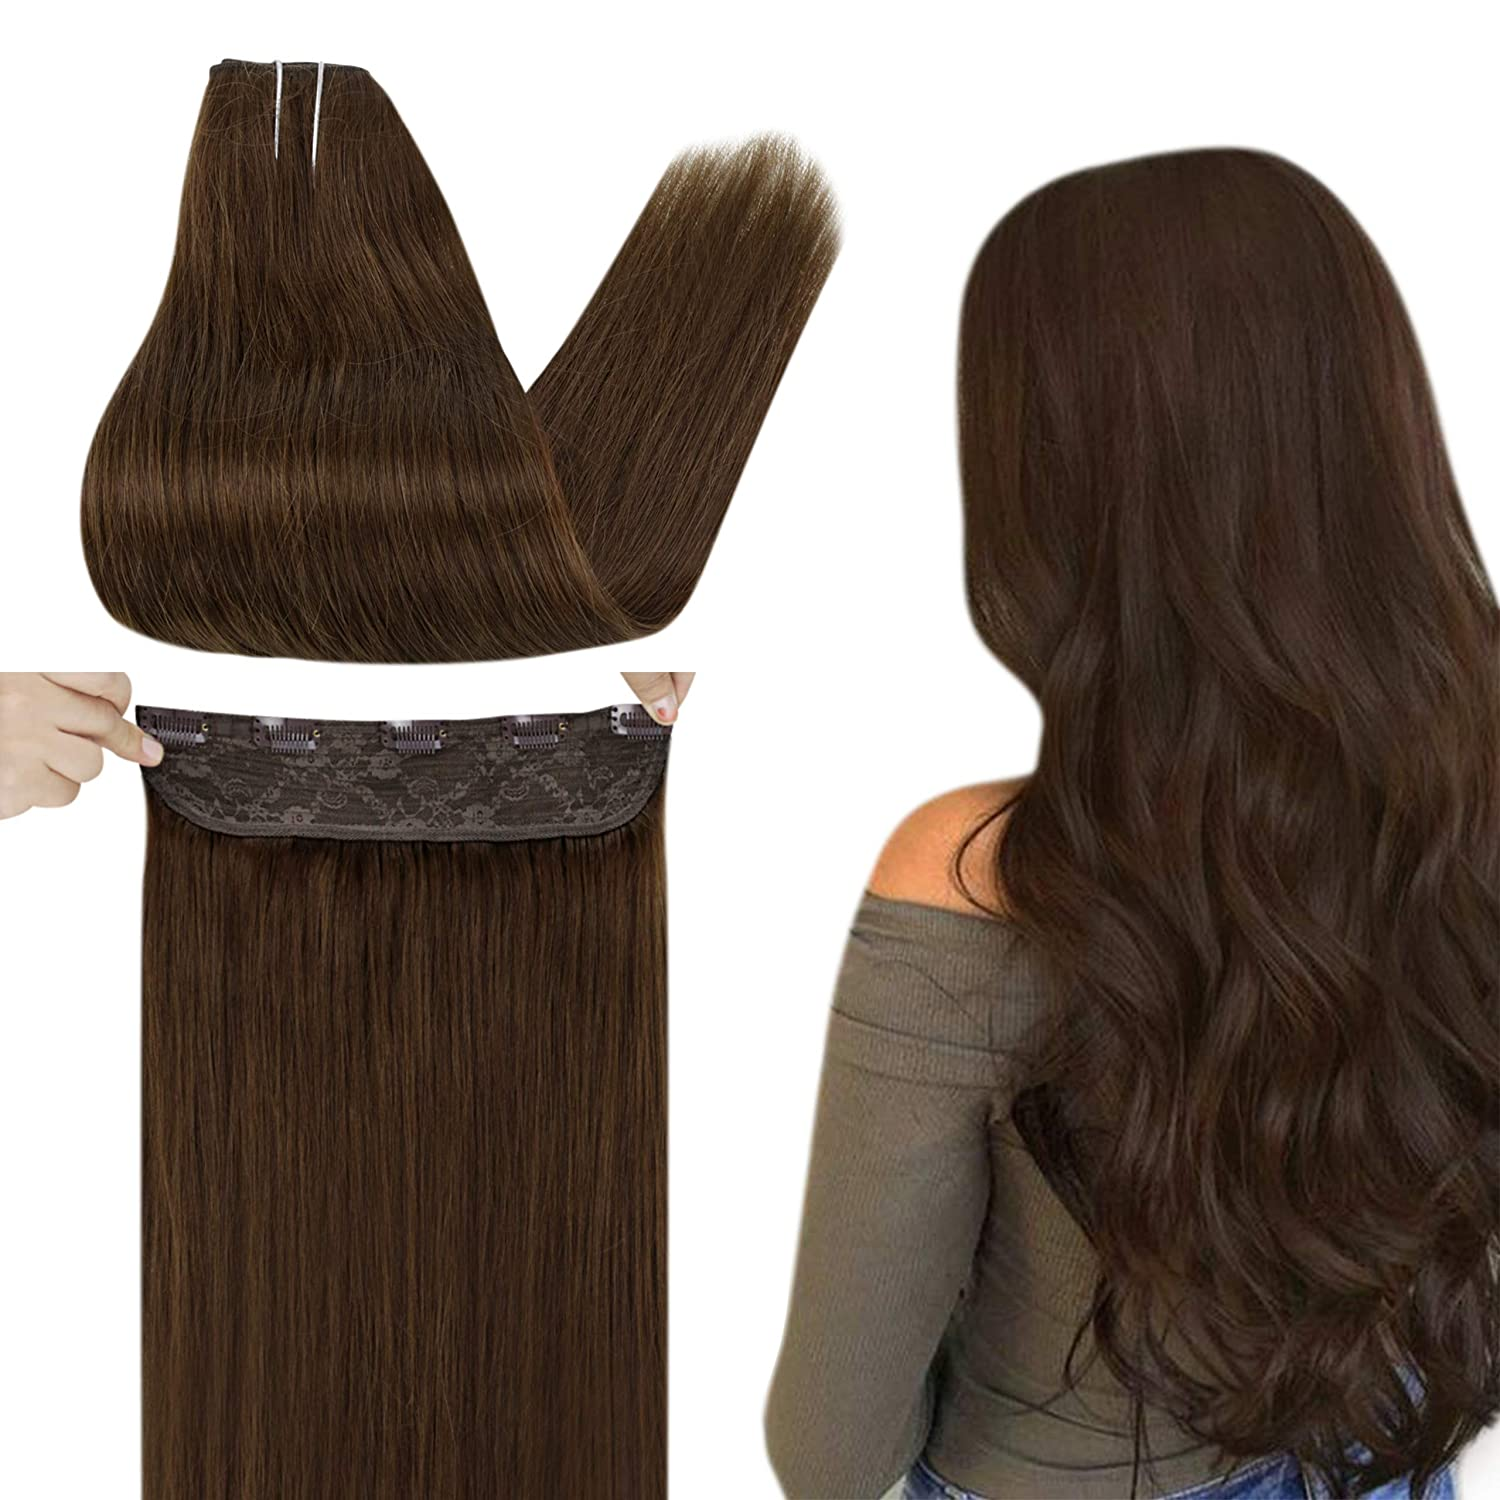 Easyouth Real Hair Extensions Clip Dark Max 64% OFF Human Rapid rise One Brown in